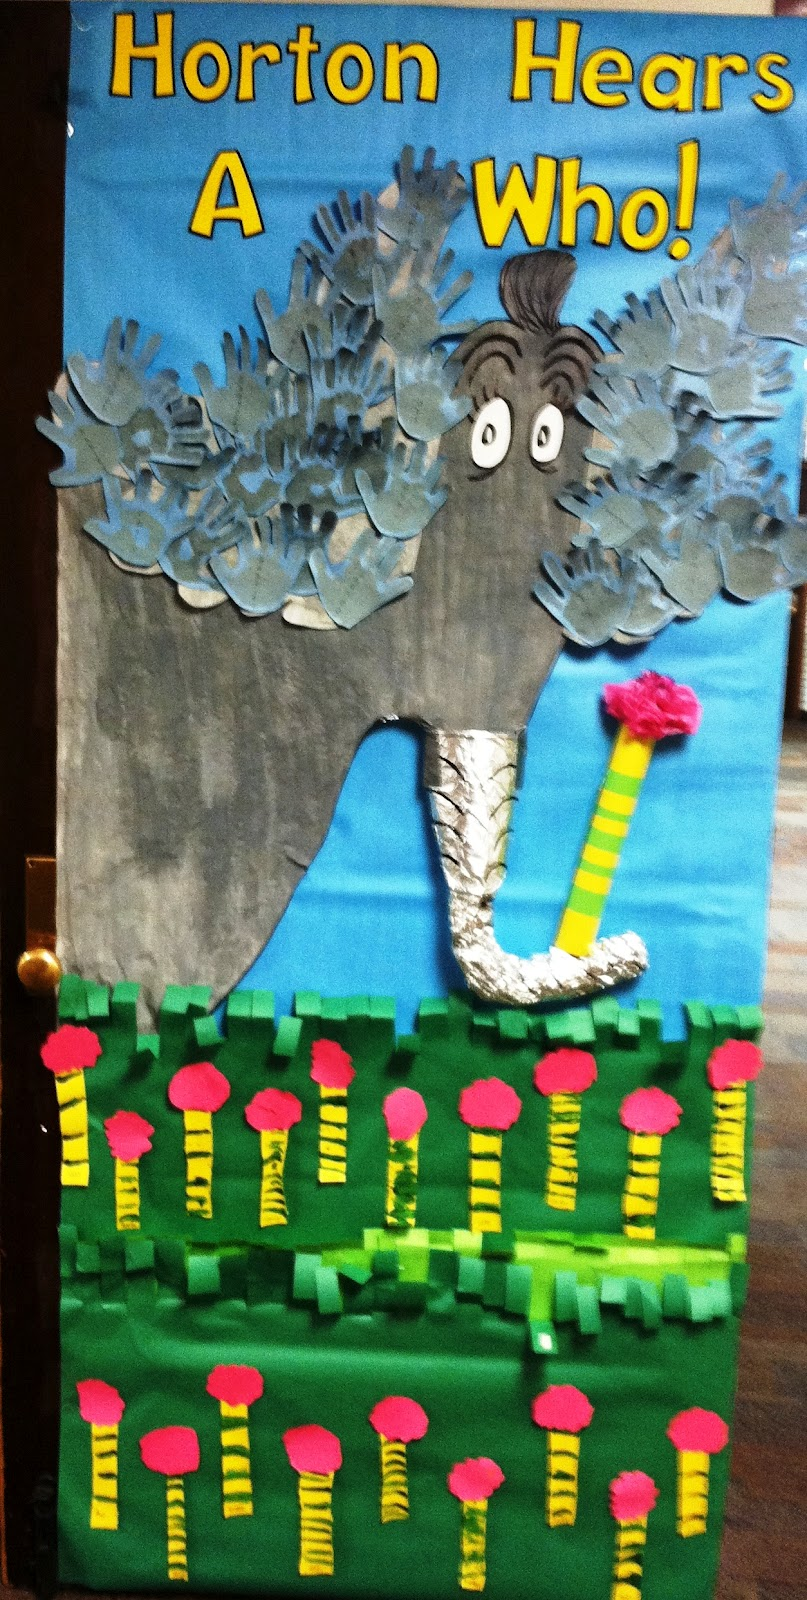 For pictures of our celebration and the door decorating contest